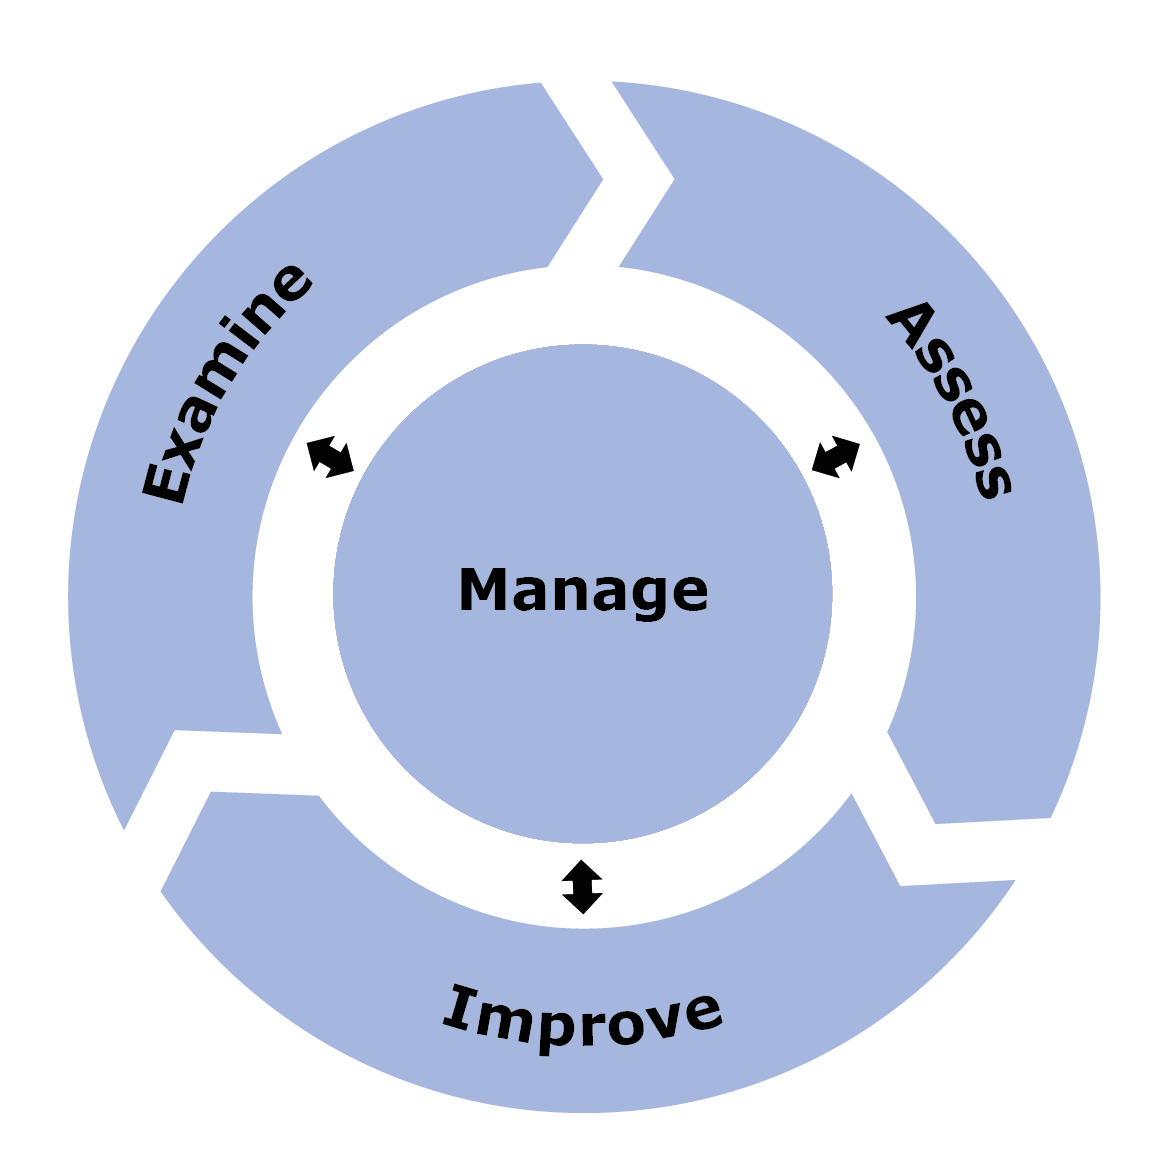 The SSA process consists of the Examine, Assess and Implement phases, guided and informed by Manage